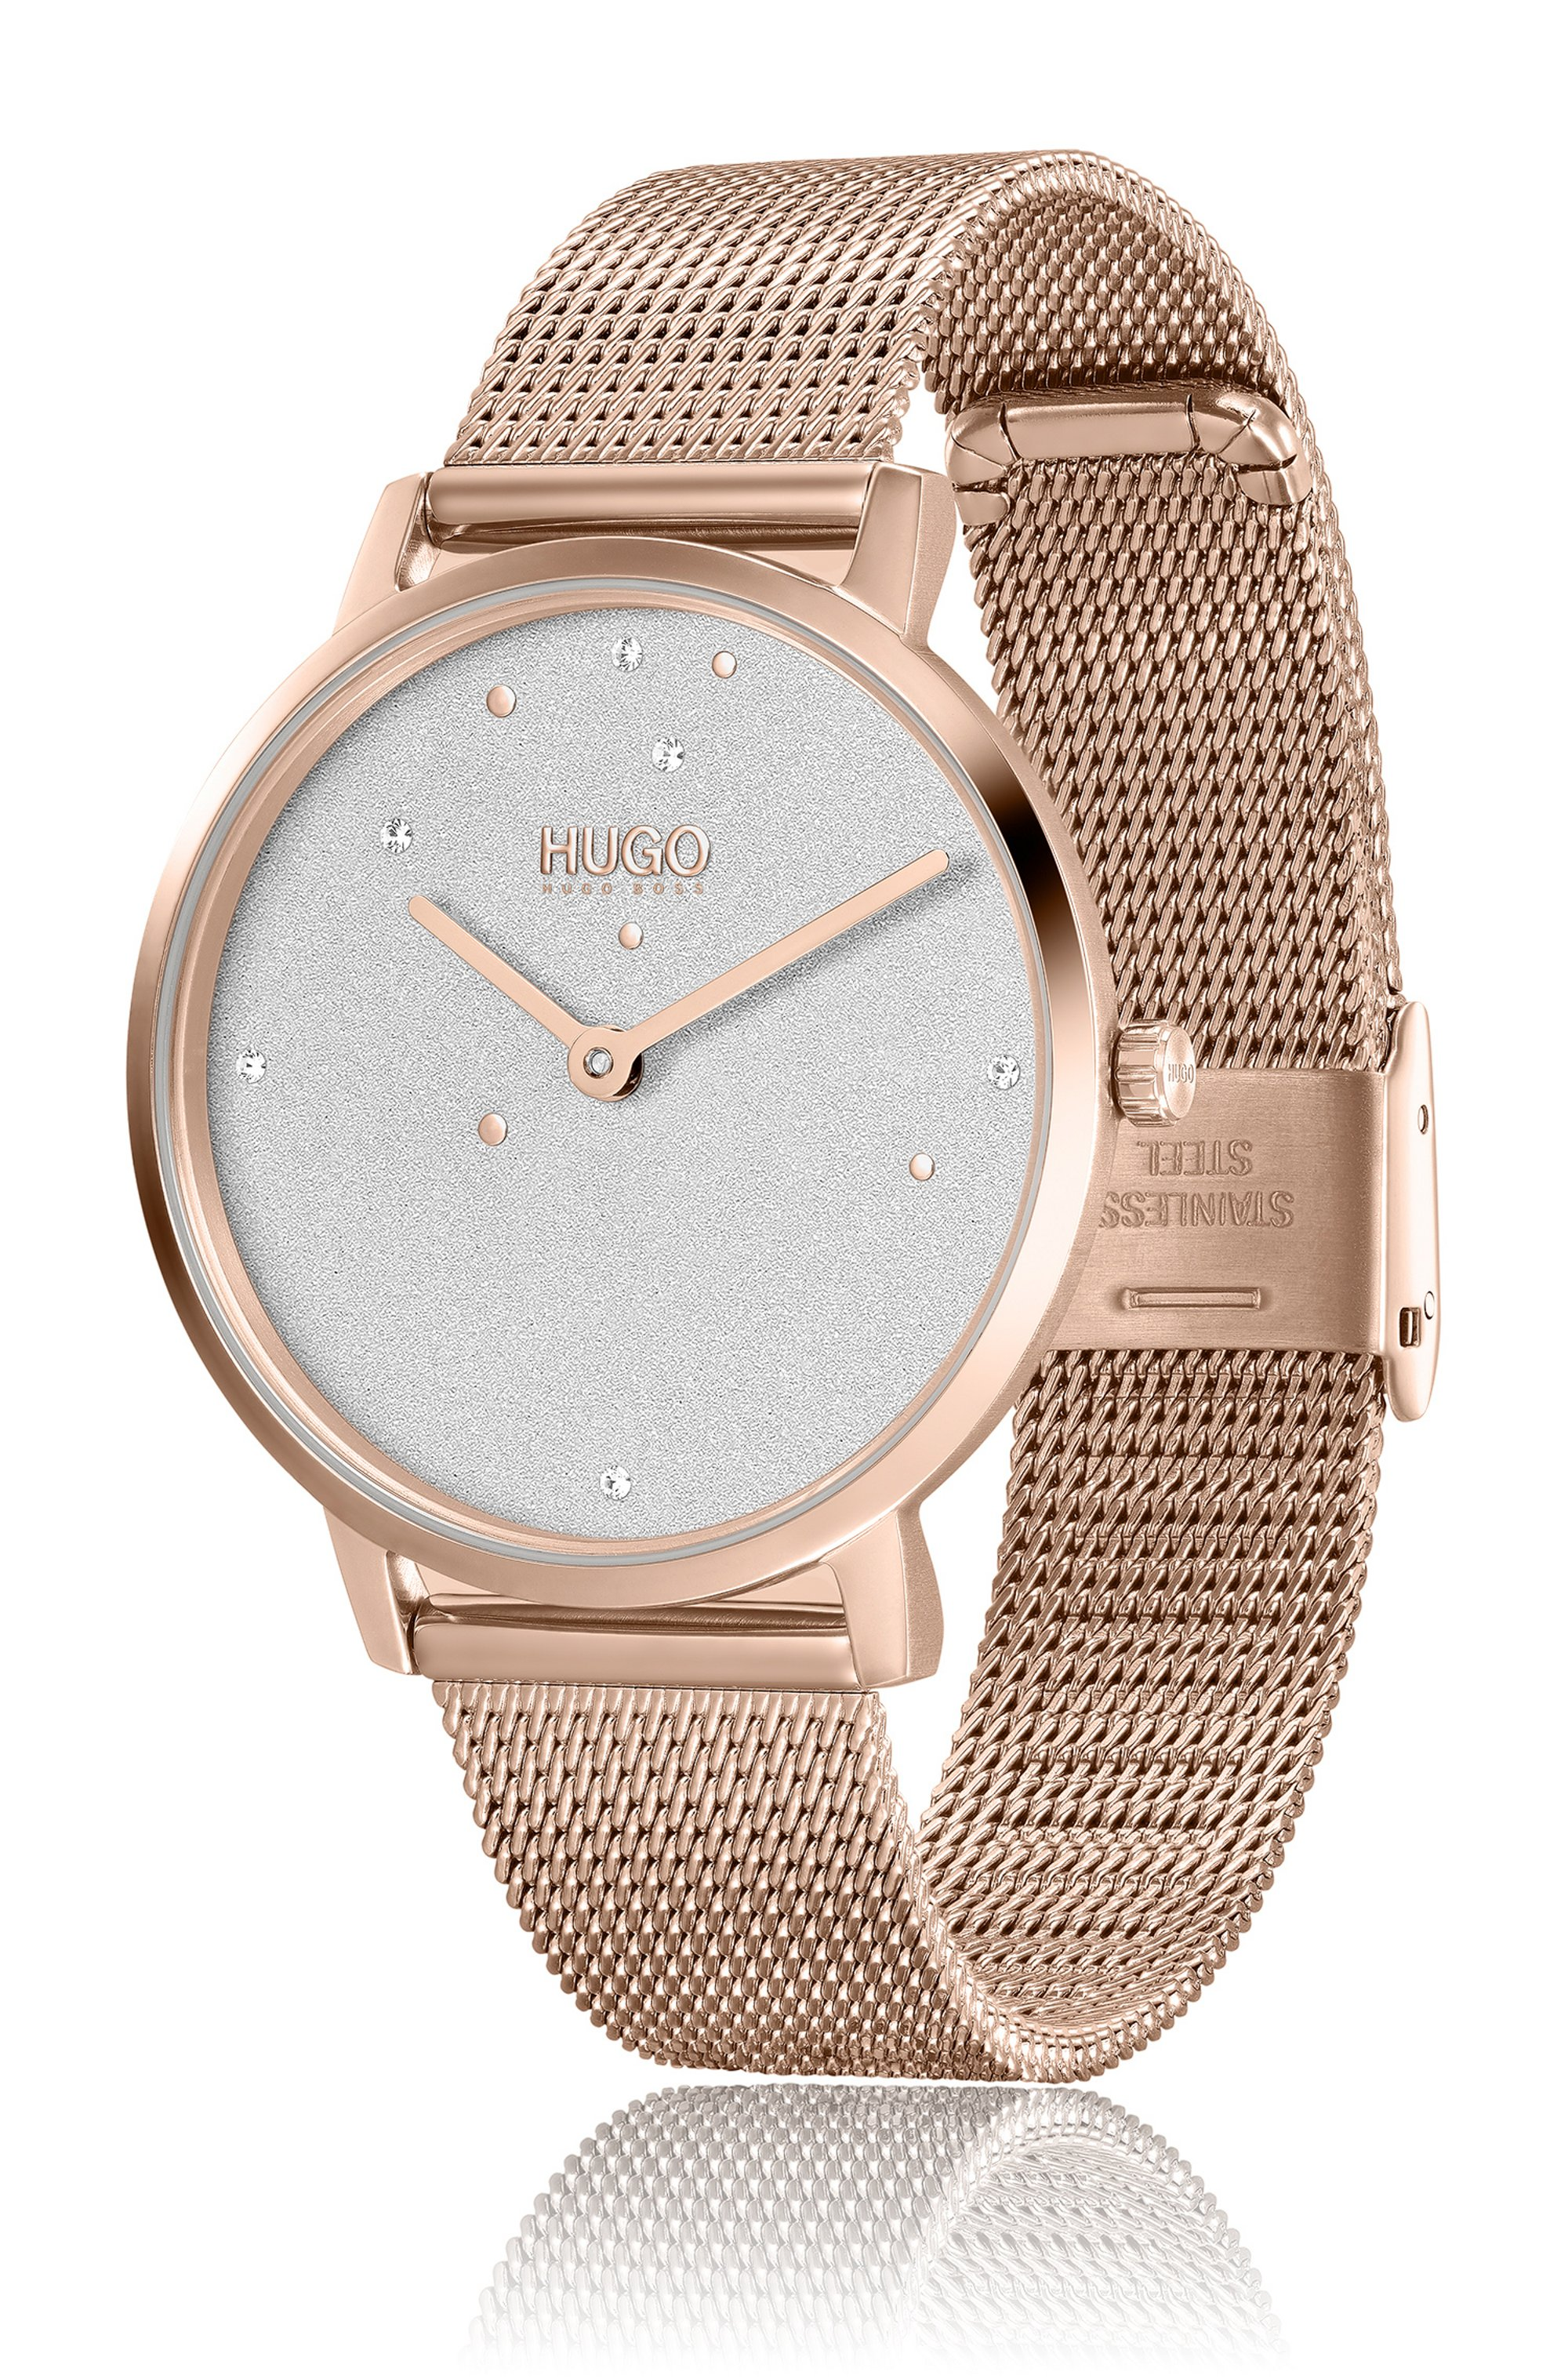 Crystal-studded watch with carnation-gold finish